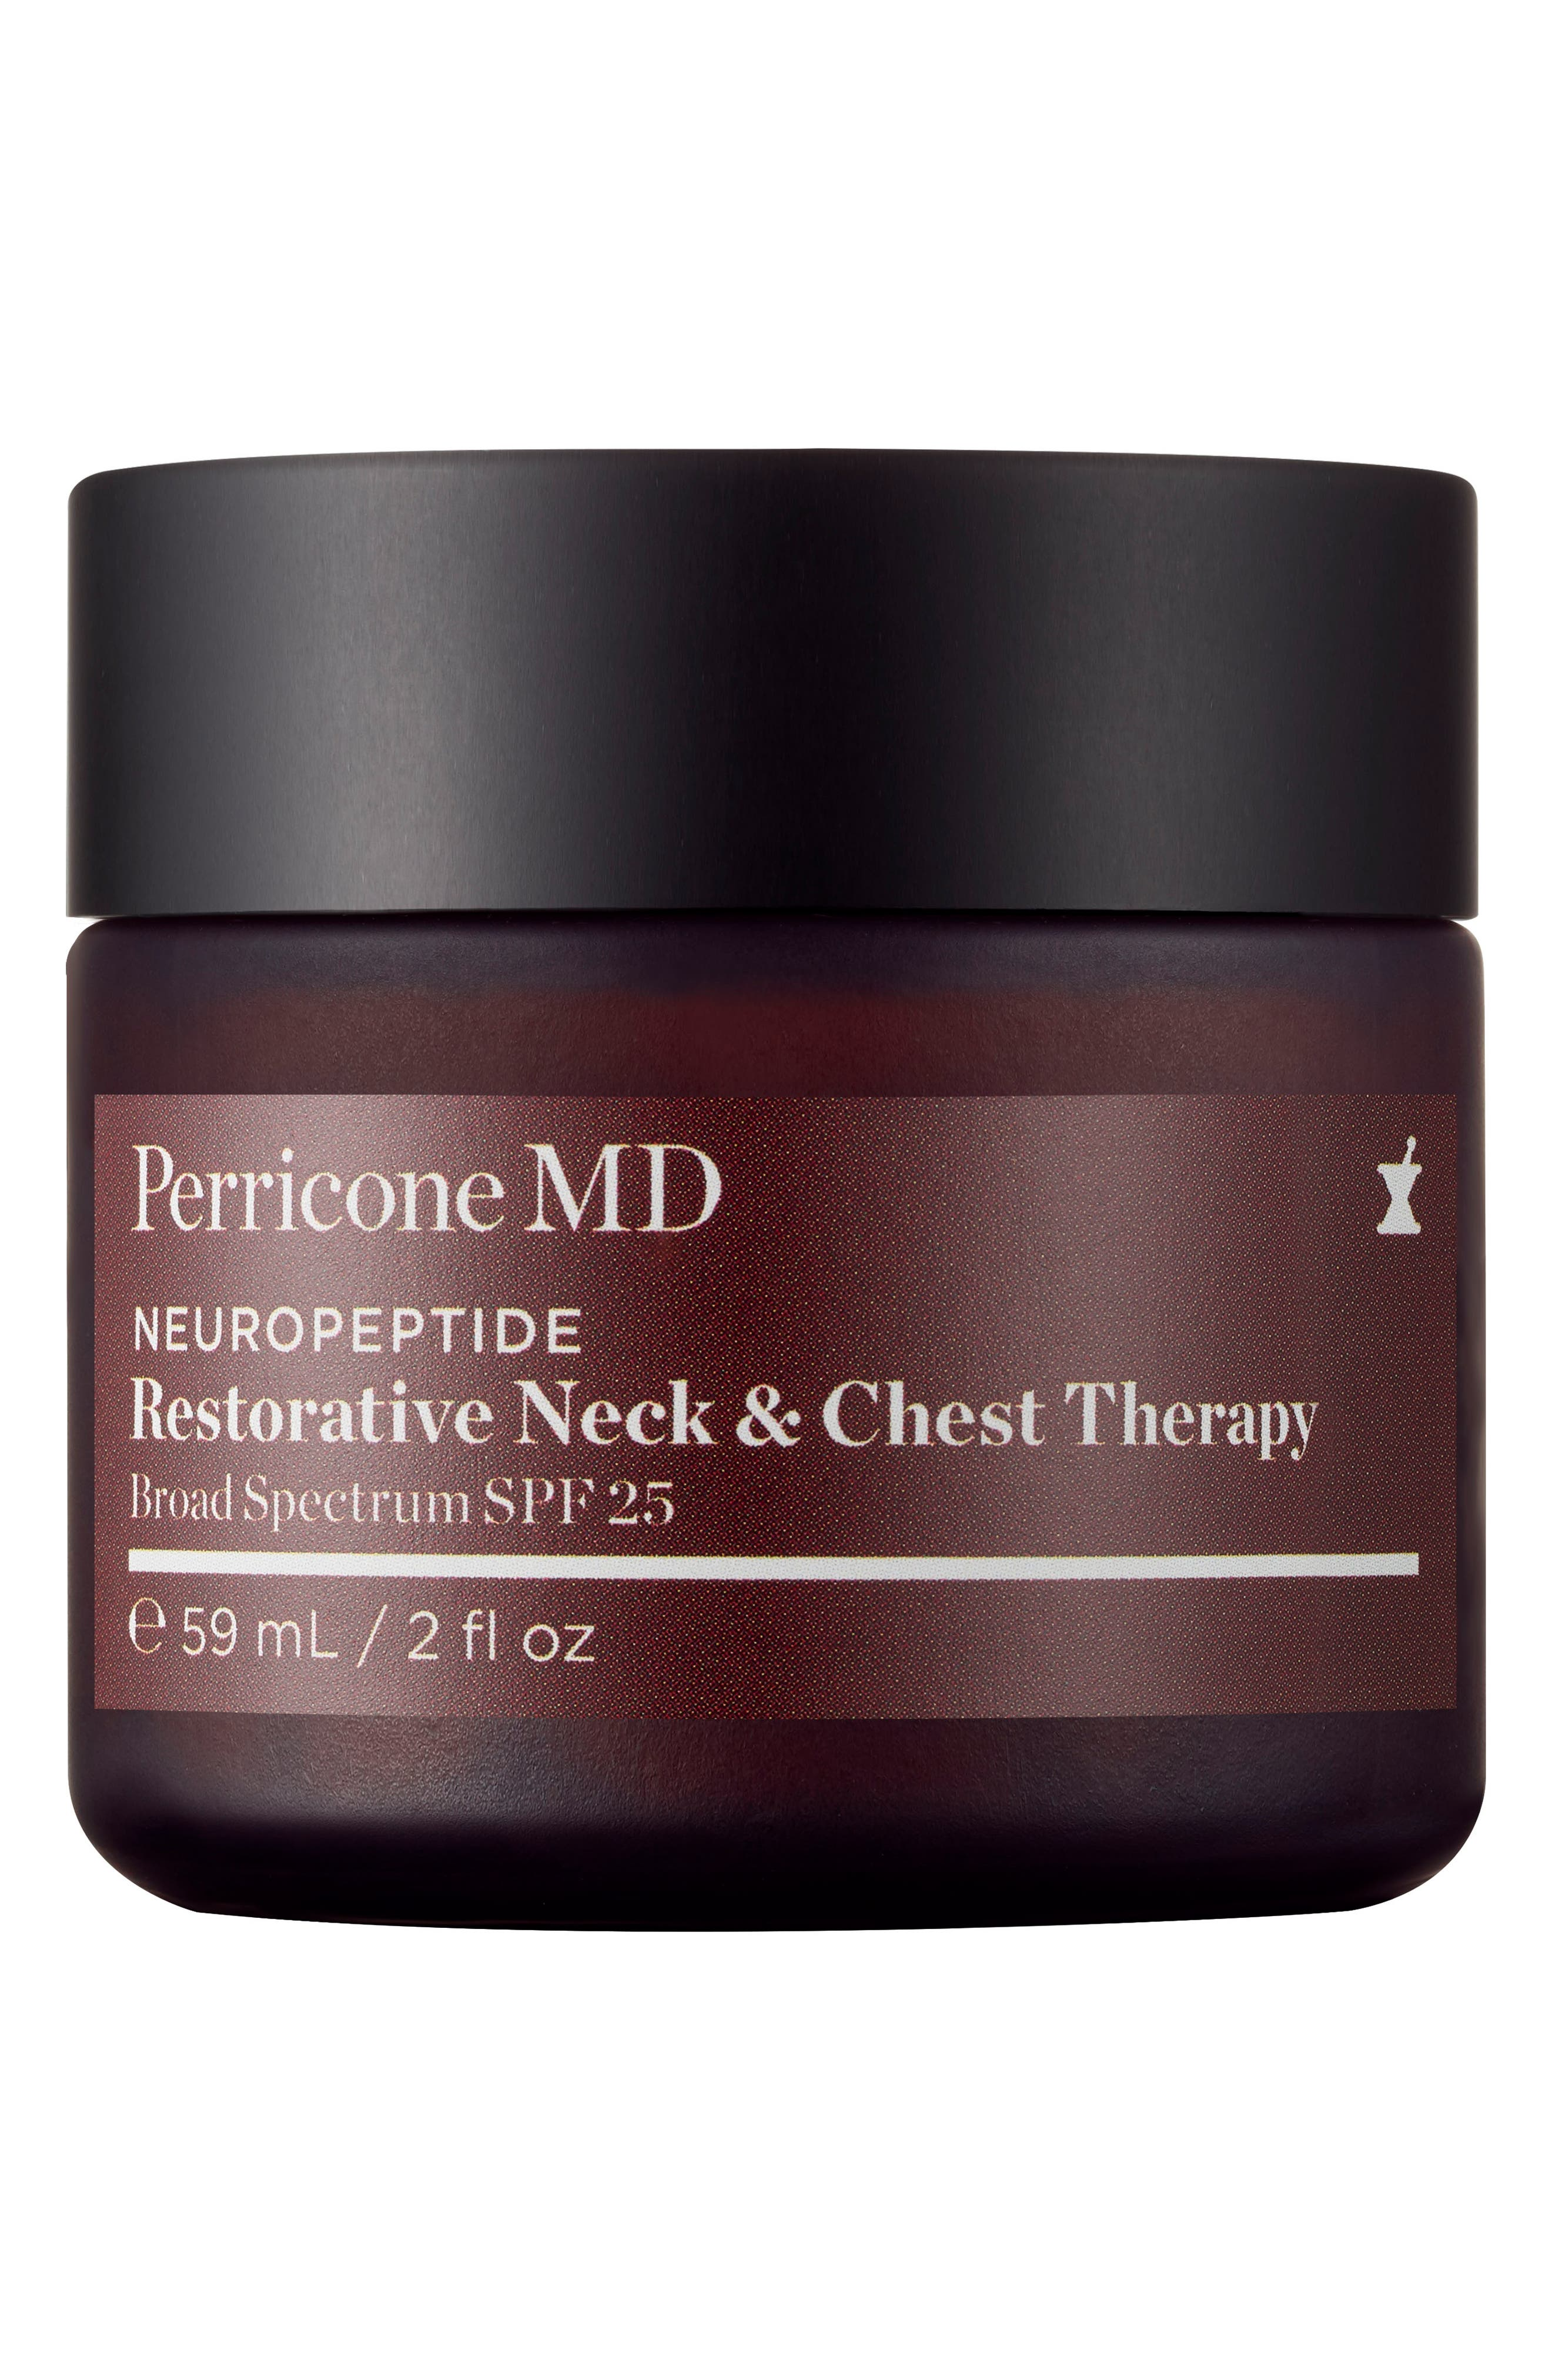 Neuropeptide Restorative Neck & Chest Therapy SPF 25,                             Main thumbnail 1, color,